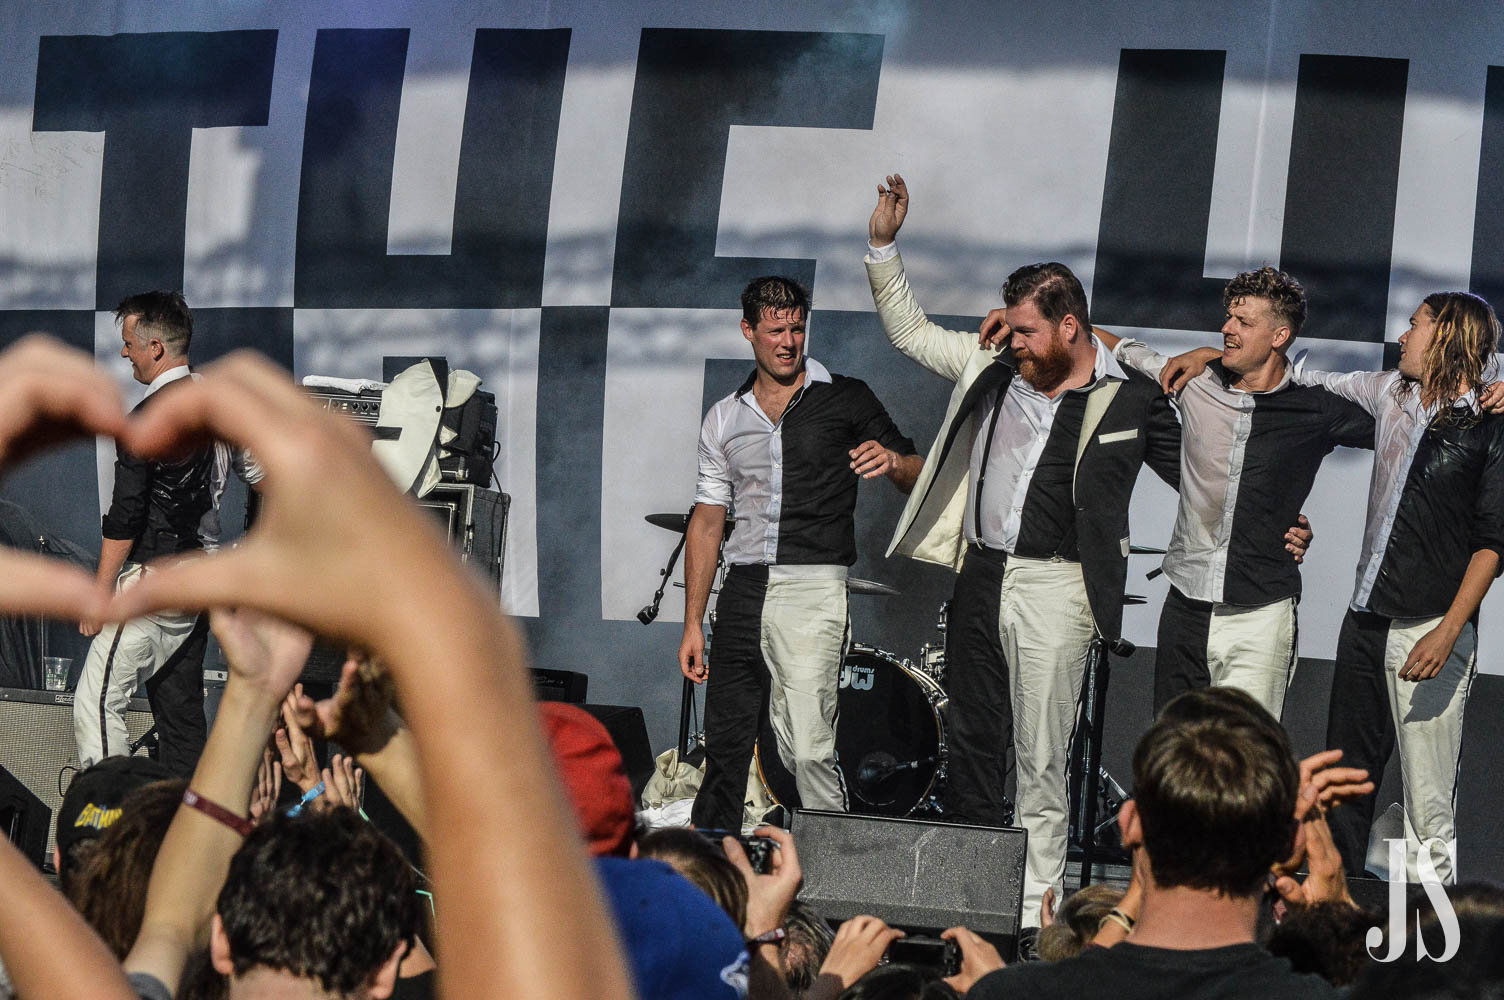 the-hives-35-of-35